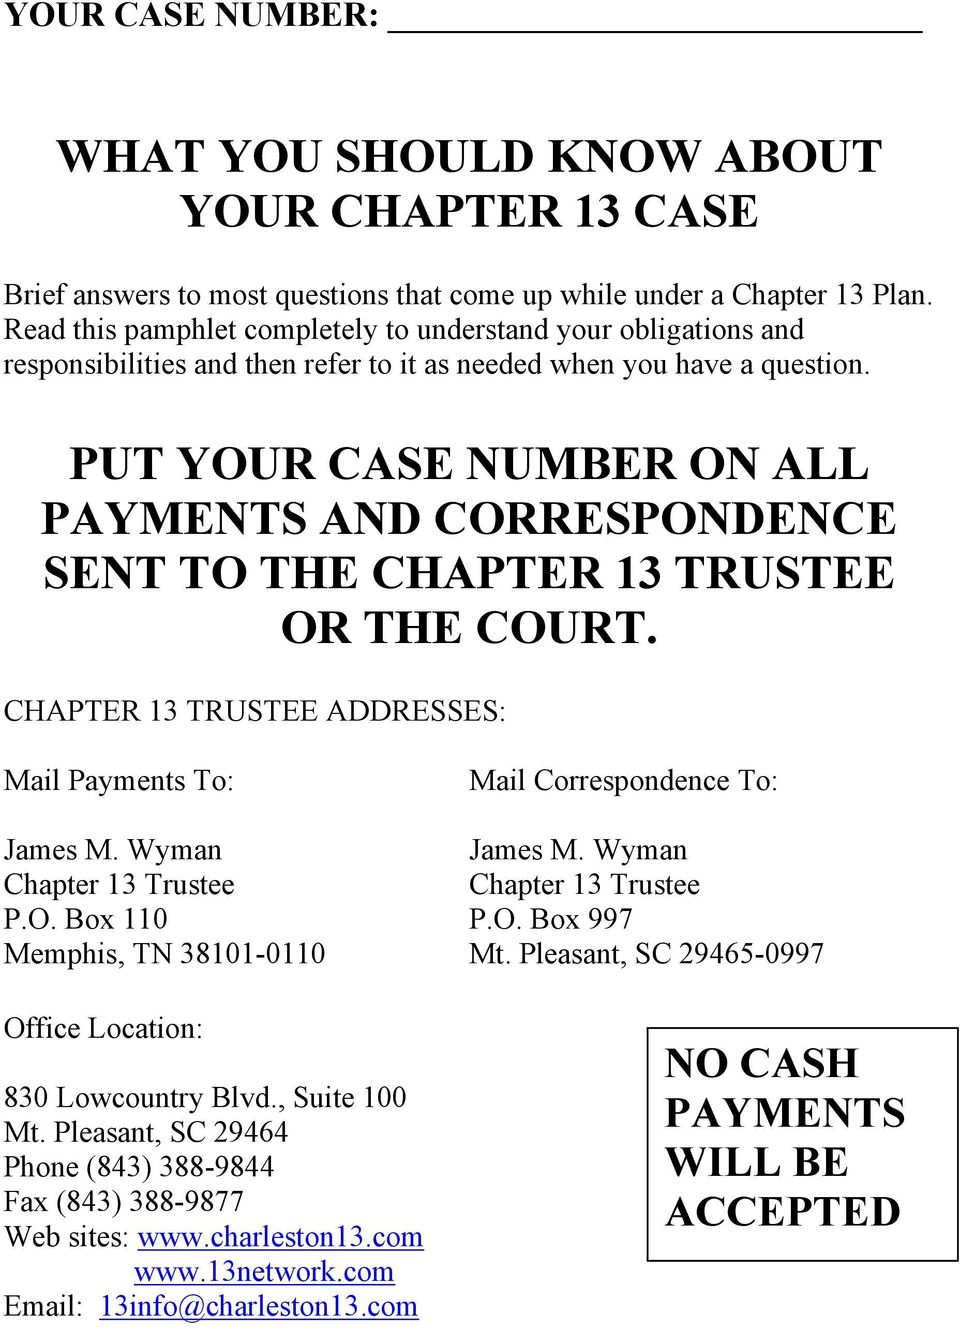 PUT YOUR CASE NUMBER ON ALL PAYMENTS AND CORRESPONDENCE SENT TO THE CHAPTER 13 TRUSTEE OR THE COURT. CHAPTER 13 TRUSTEE ADDRESSES: Mail Payments To: Mail Correspondence To: James M. Wyman James M.